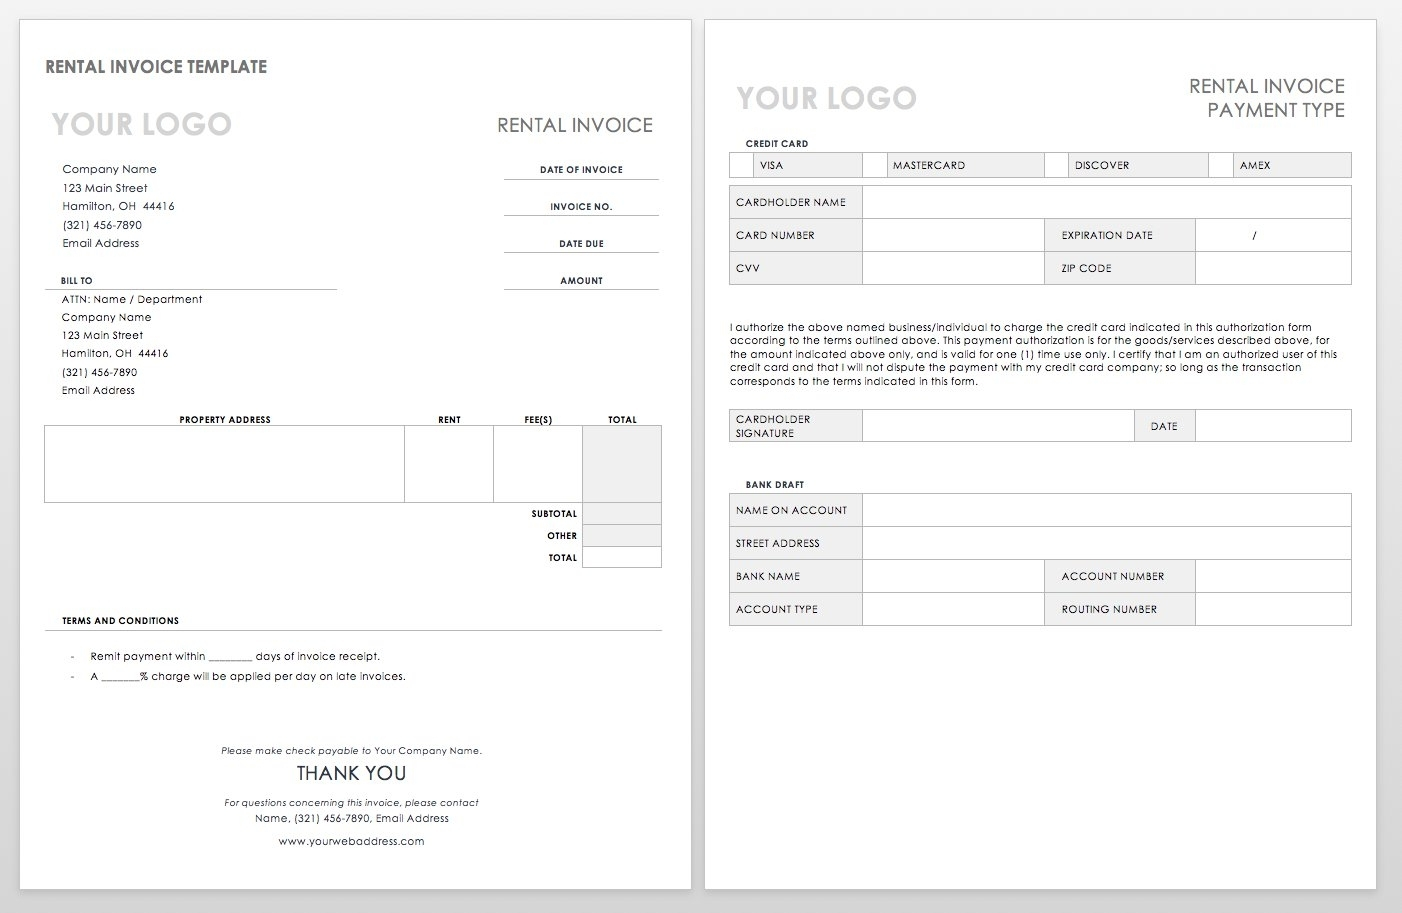 55 Free Invoice Templates | Smartsheet in Free Printable Blank Templates For Paid And Owed